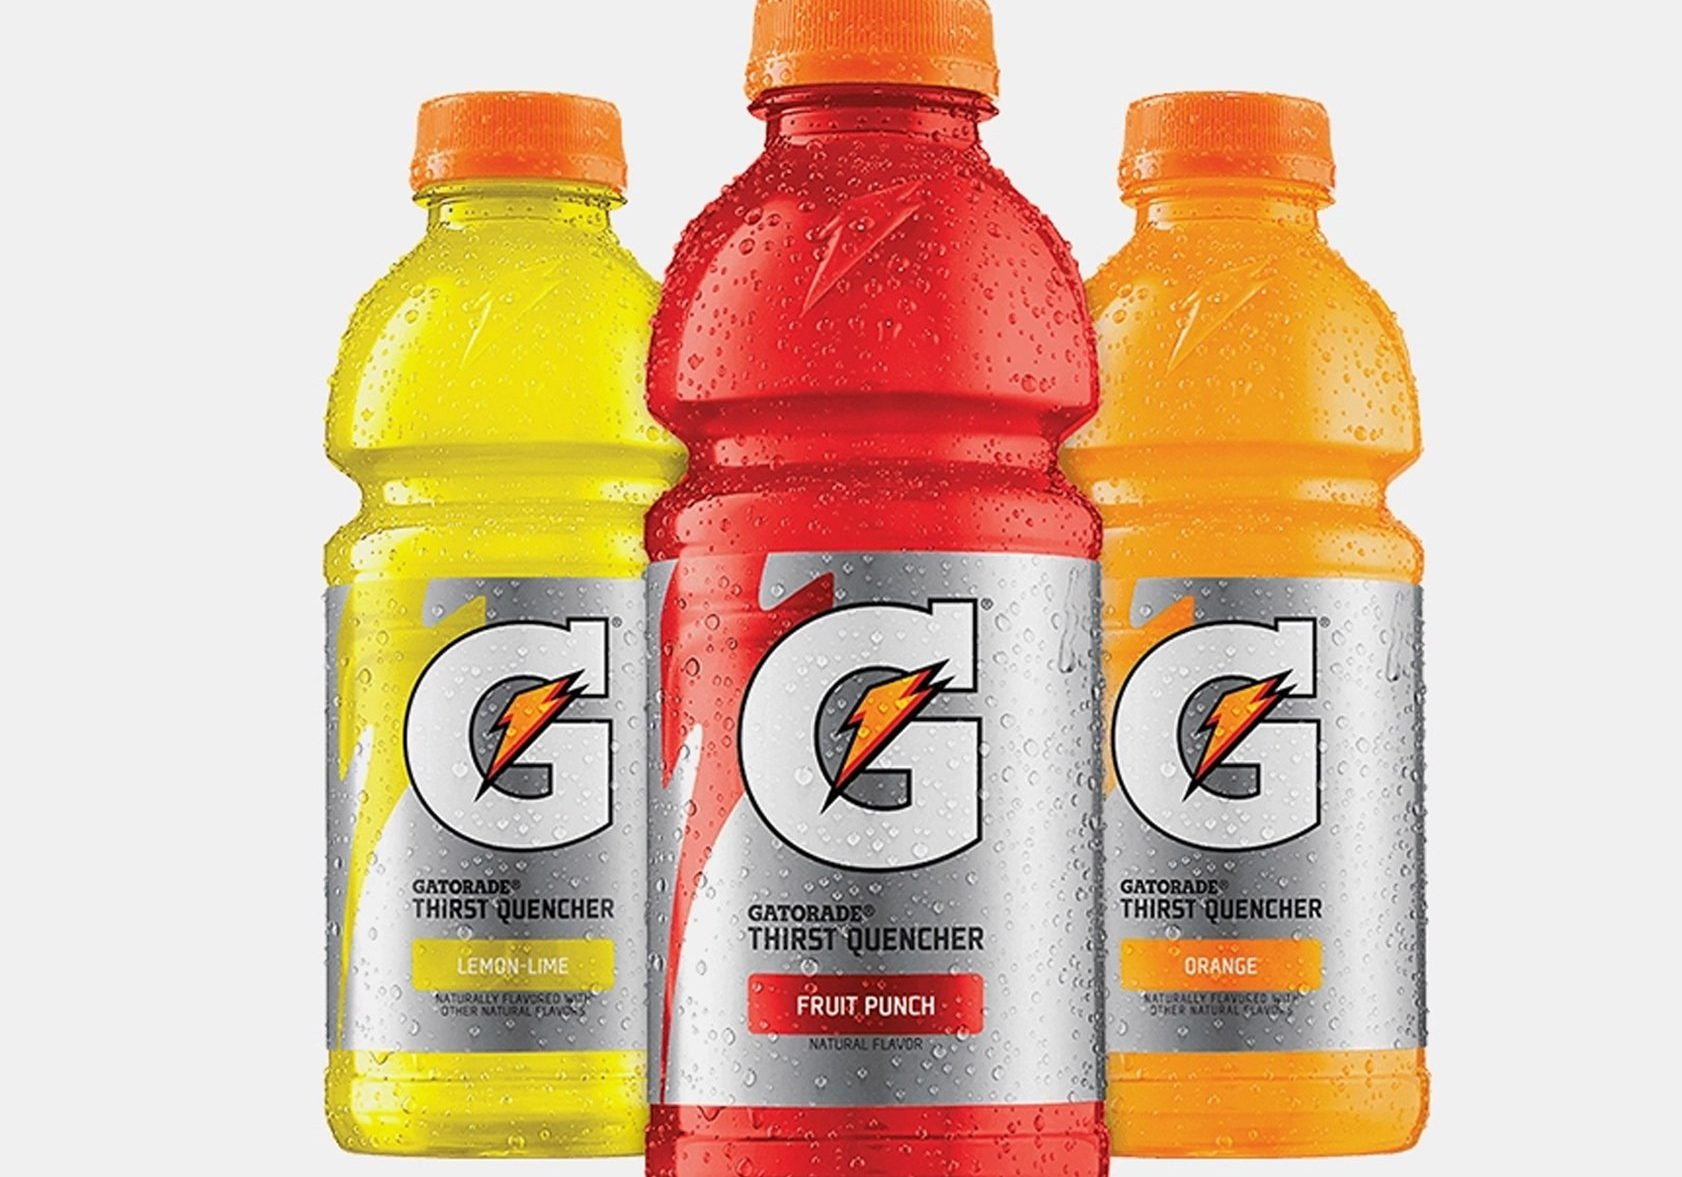 morongo travel center deals - gatorade